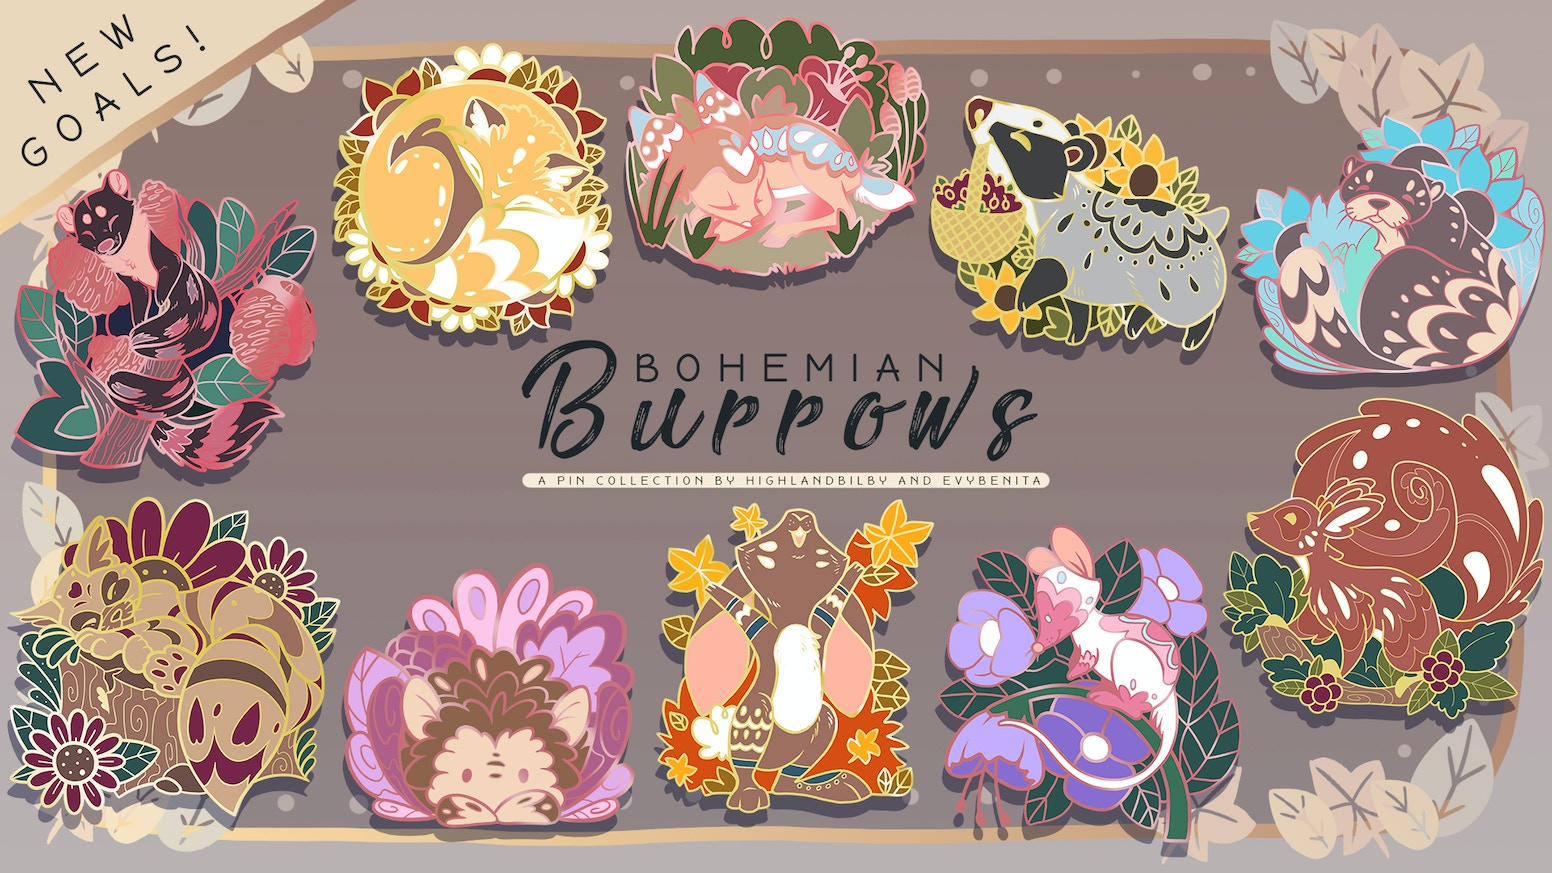 Boho Bunnies and Flashy Foxes. For lovers of Woodland critters and fun patterns, inspired by Bohemian fashion.